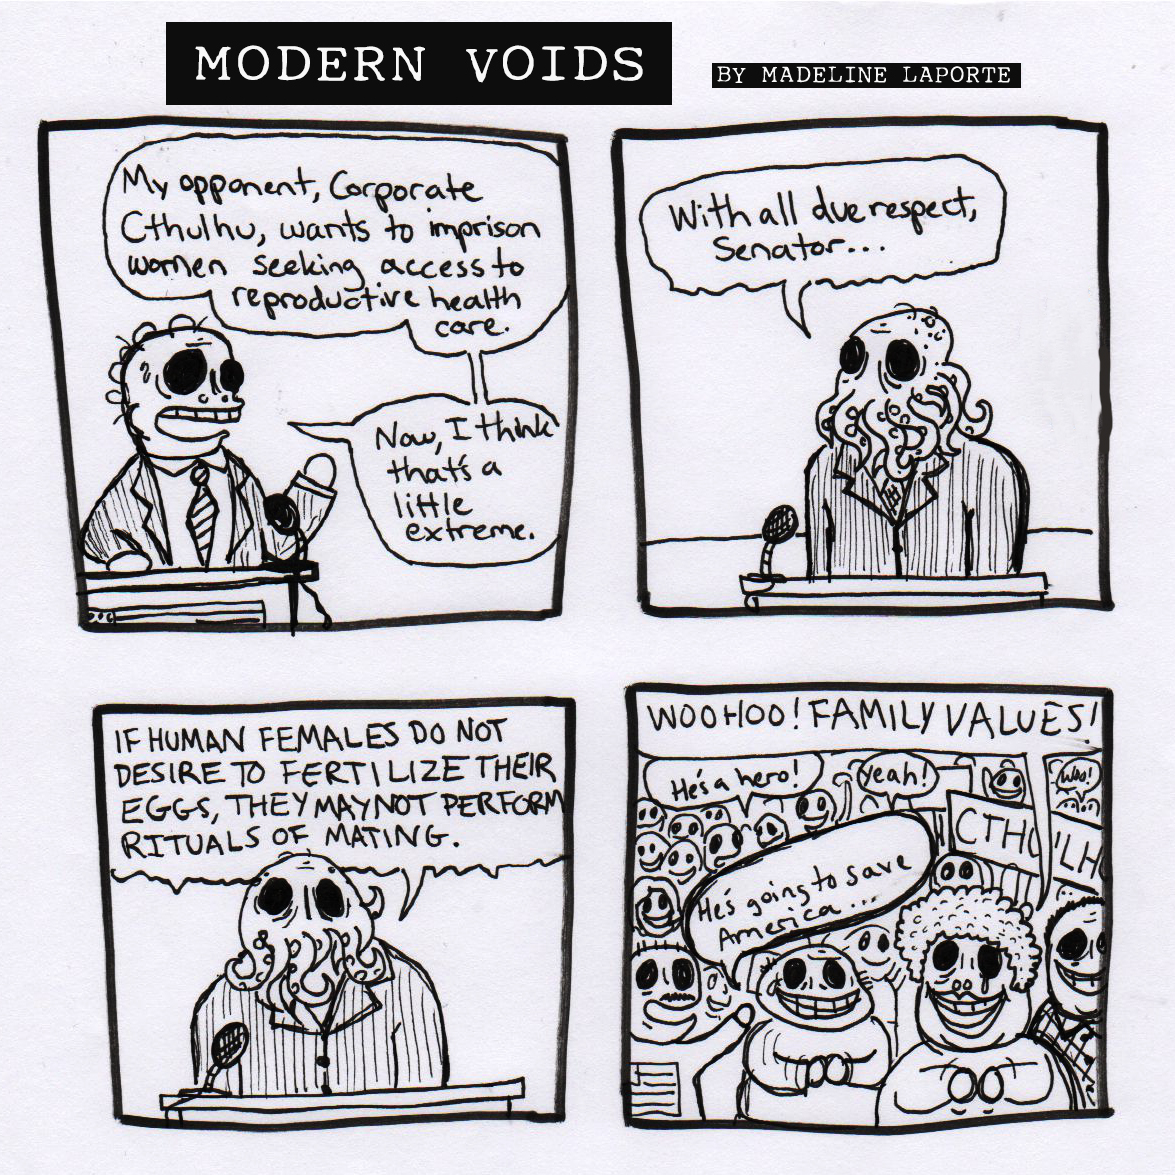 corporation modern voids posted in art comics corporate cthulhu equality politics image format and tagged comic strip corporation cthulhu culture current events debate